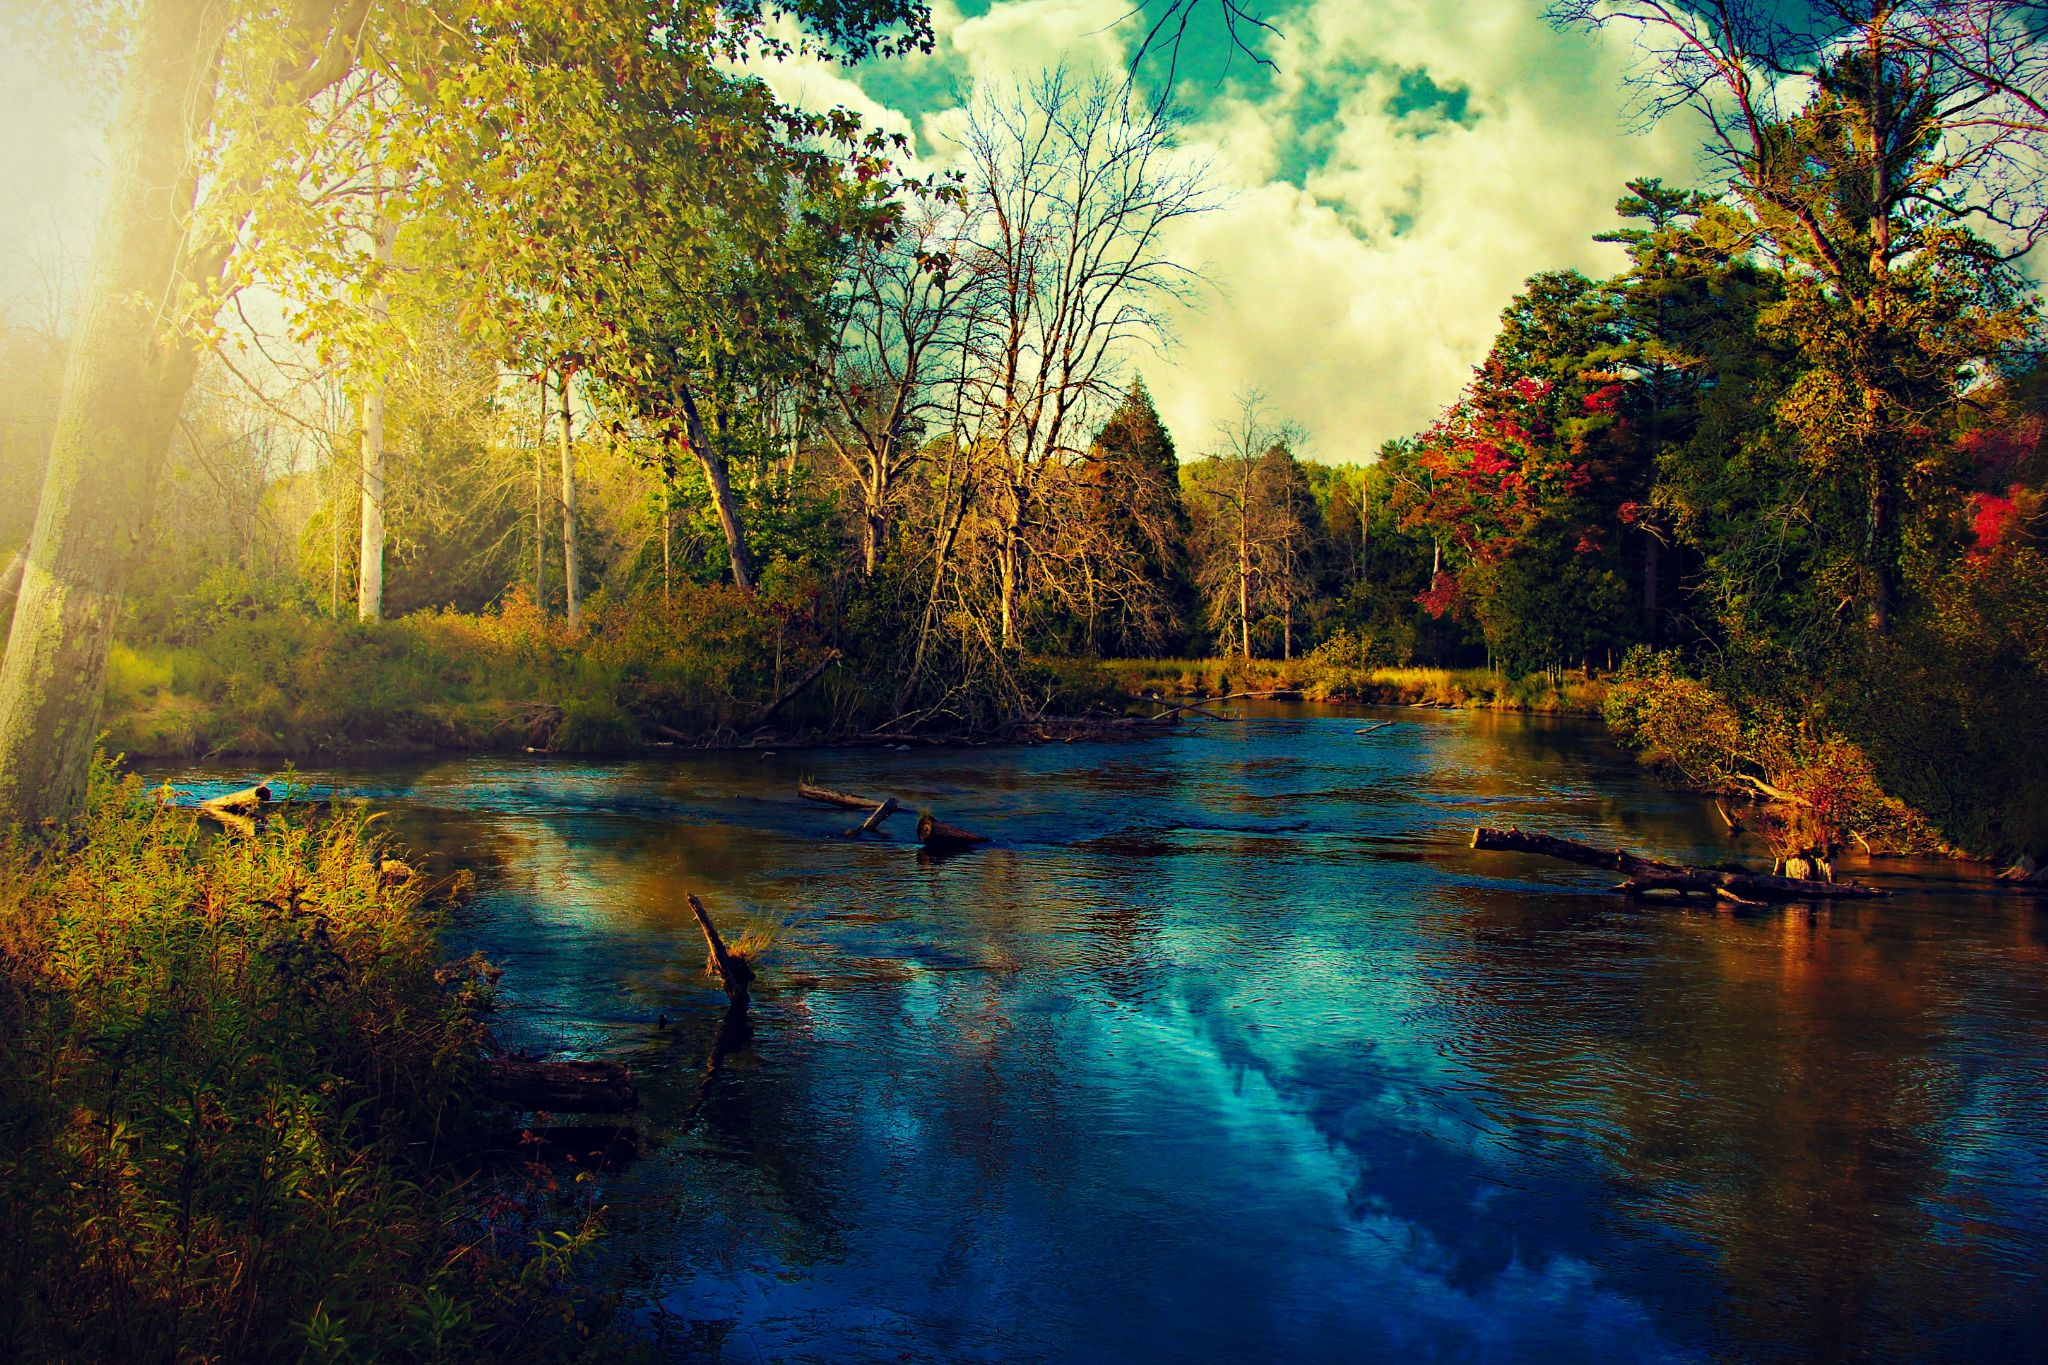 The Weir by Sarahmageeandersonphotography